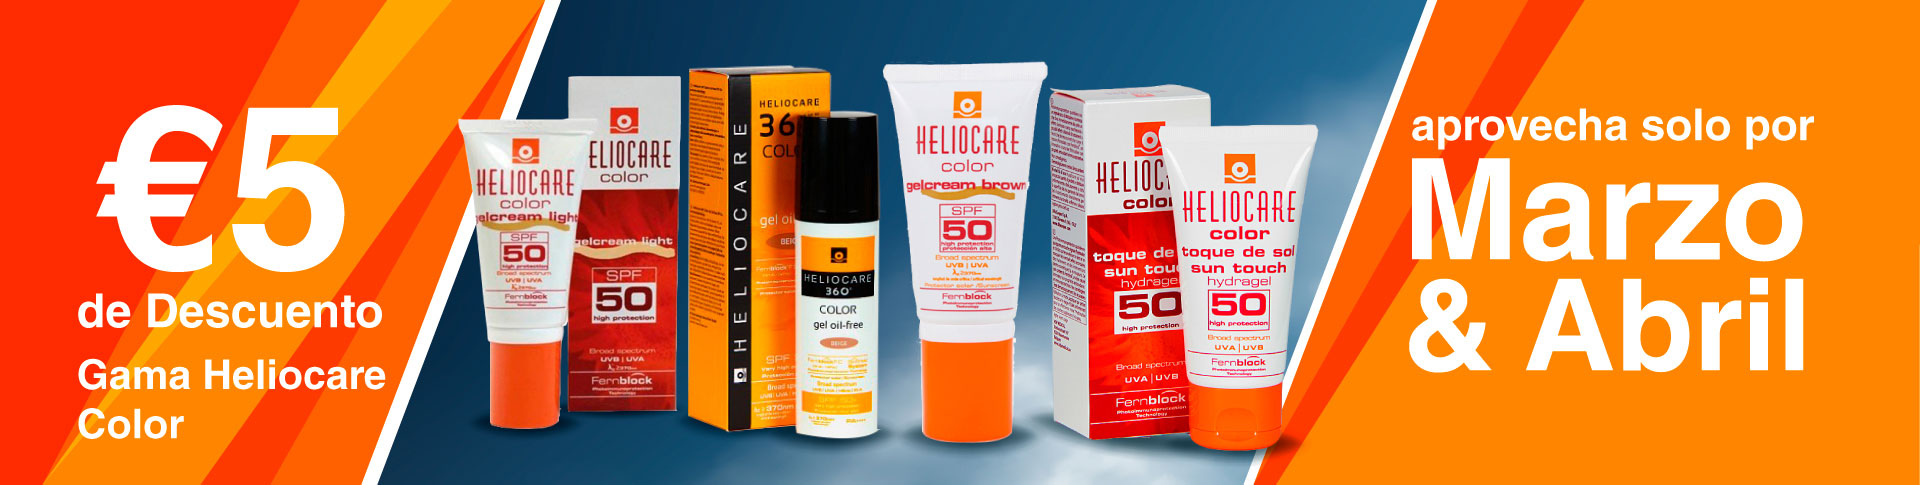 heliocare-color-1.jpg